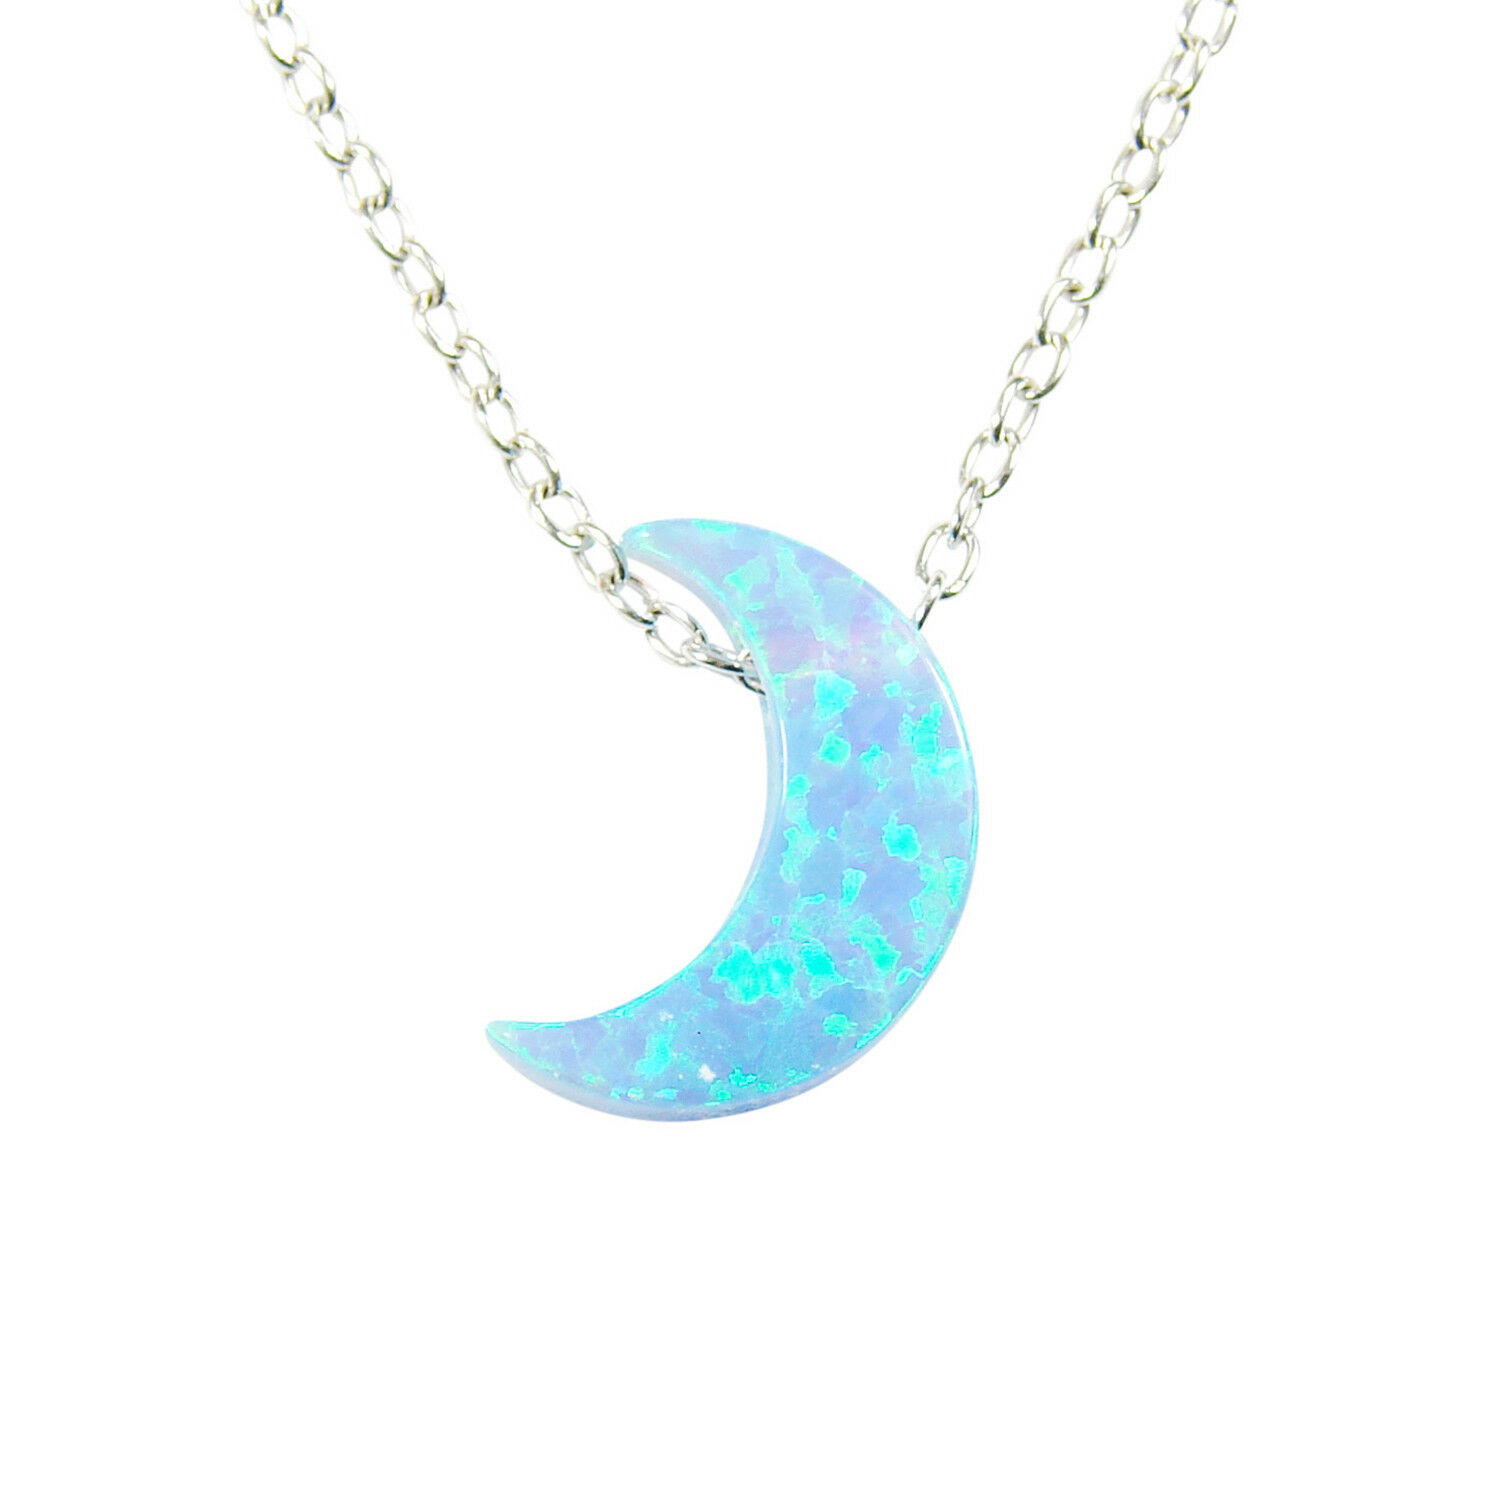 White Moon Opal Necklace,Gold Filled 925 Sterling Silver Necklace,Crescent Moon Pendant Necklace,Opal necklace,Opal Moon Necklace